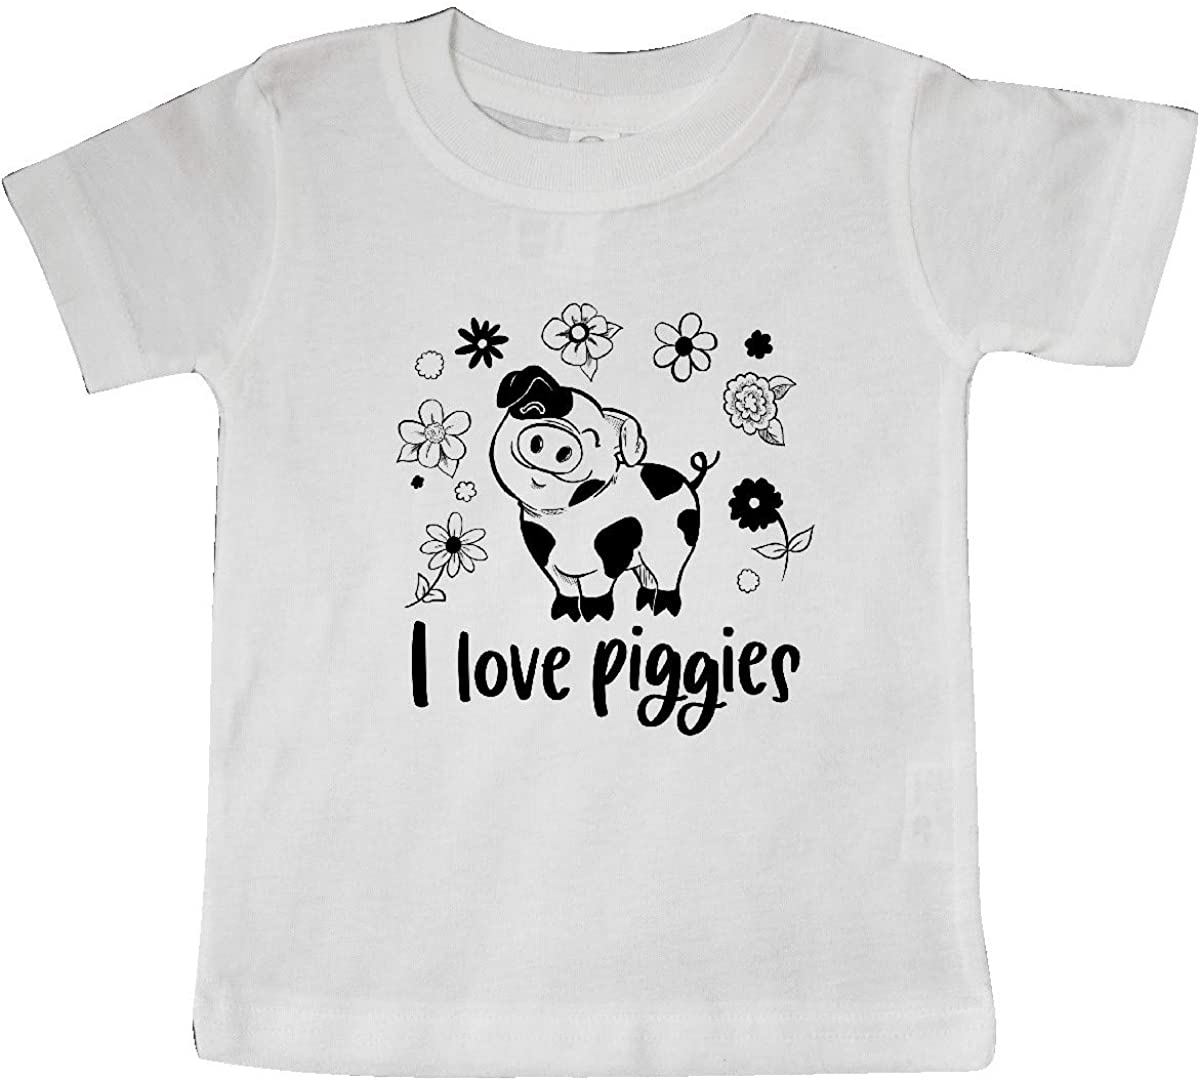 inktastic I Love Piggies Cute Pig and Flowers Baby T-Shirt